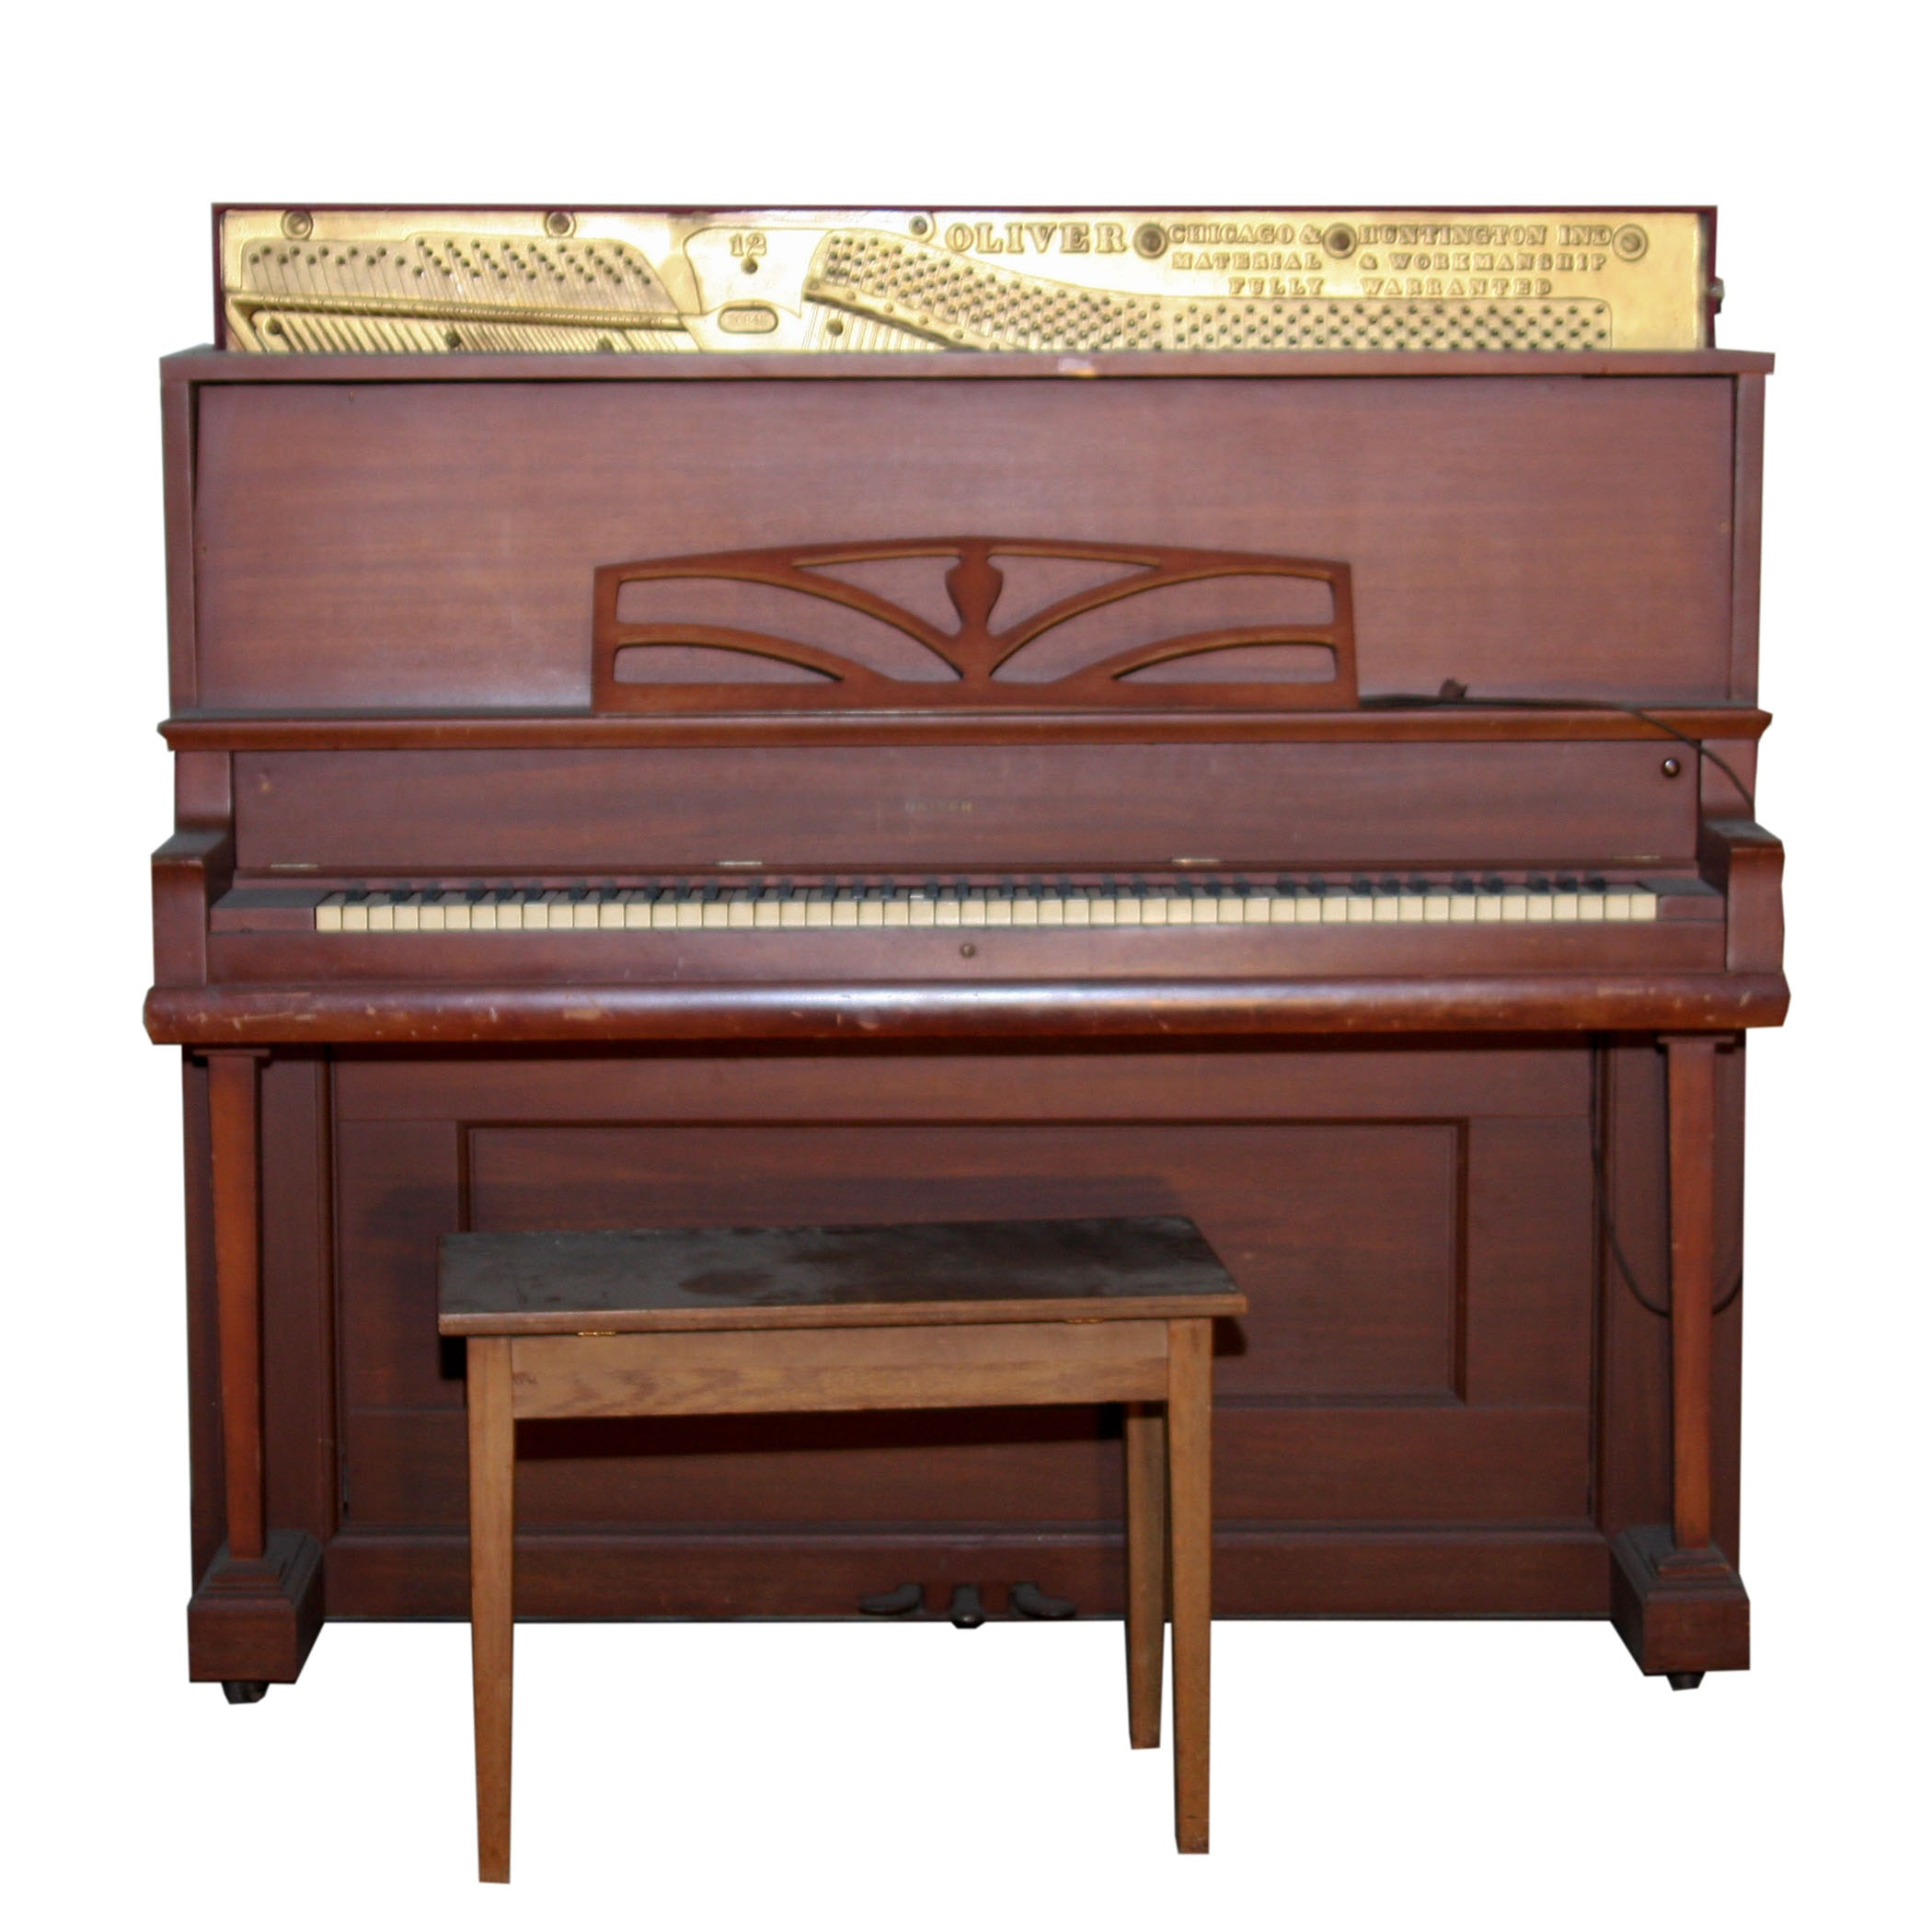 Oliver Upright Piano